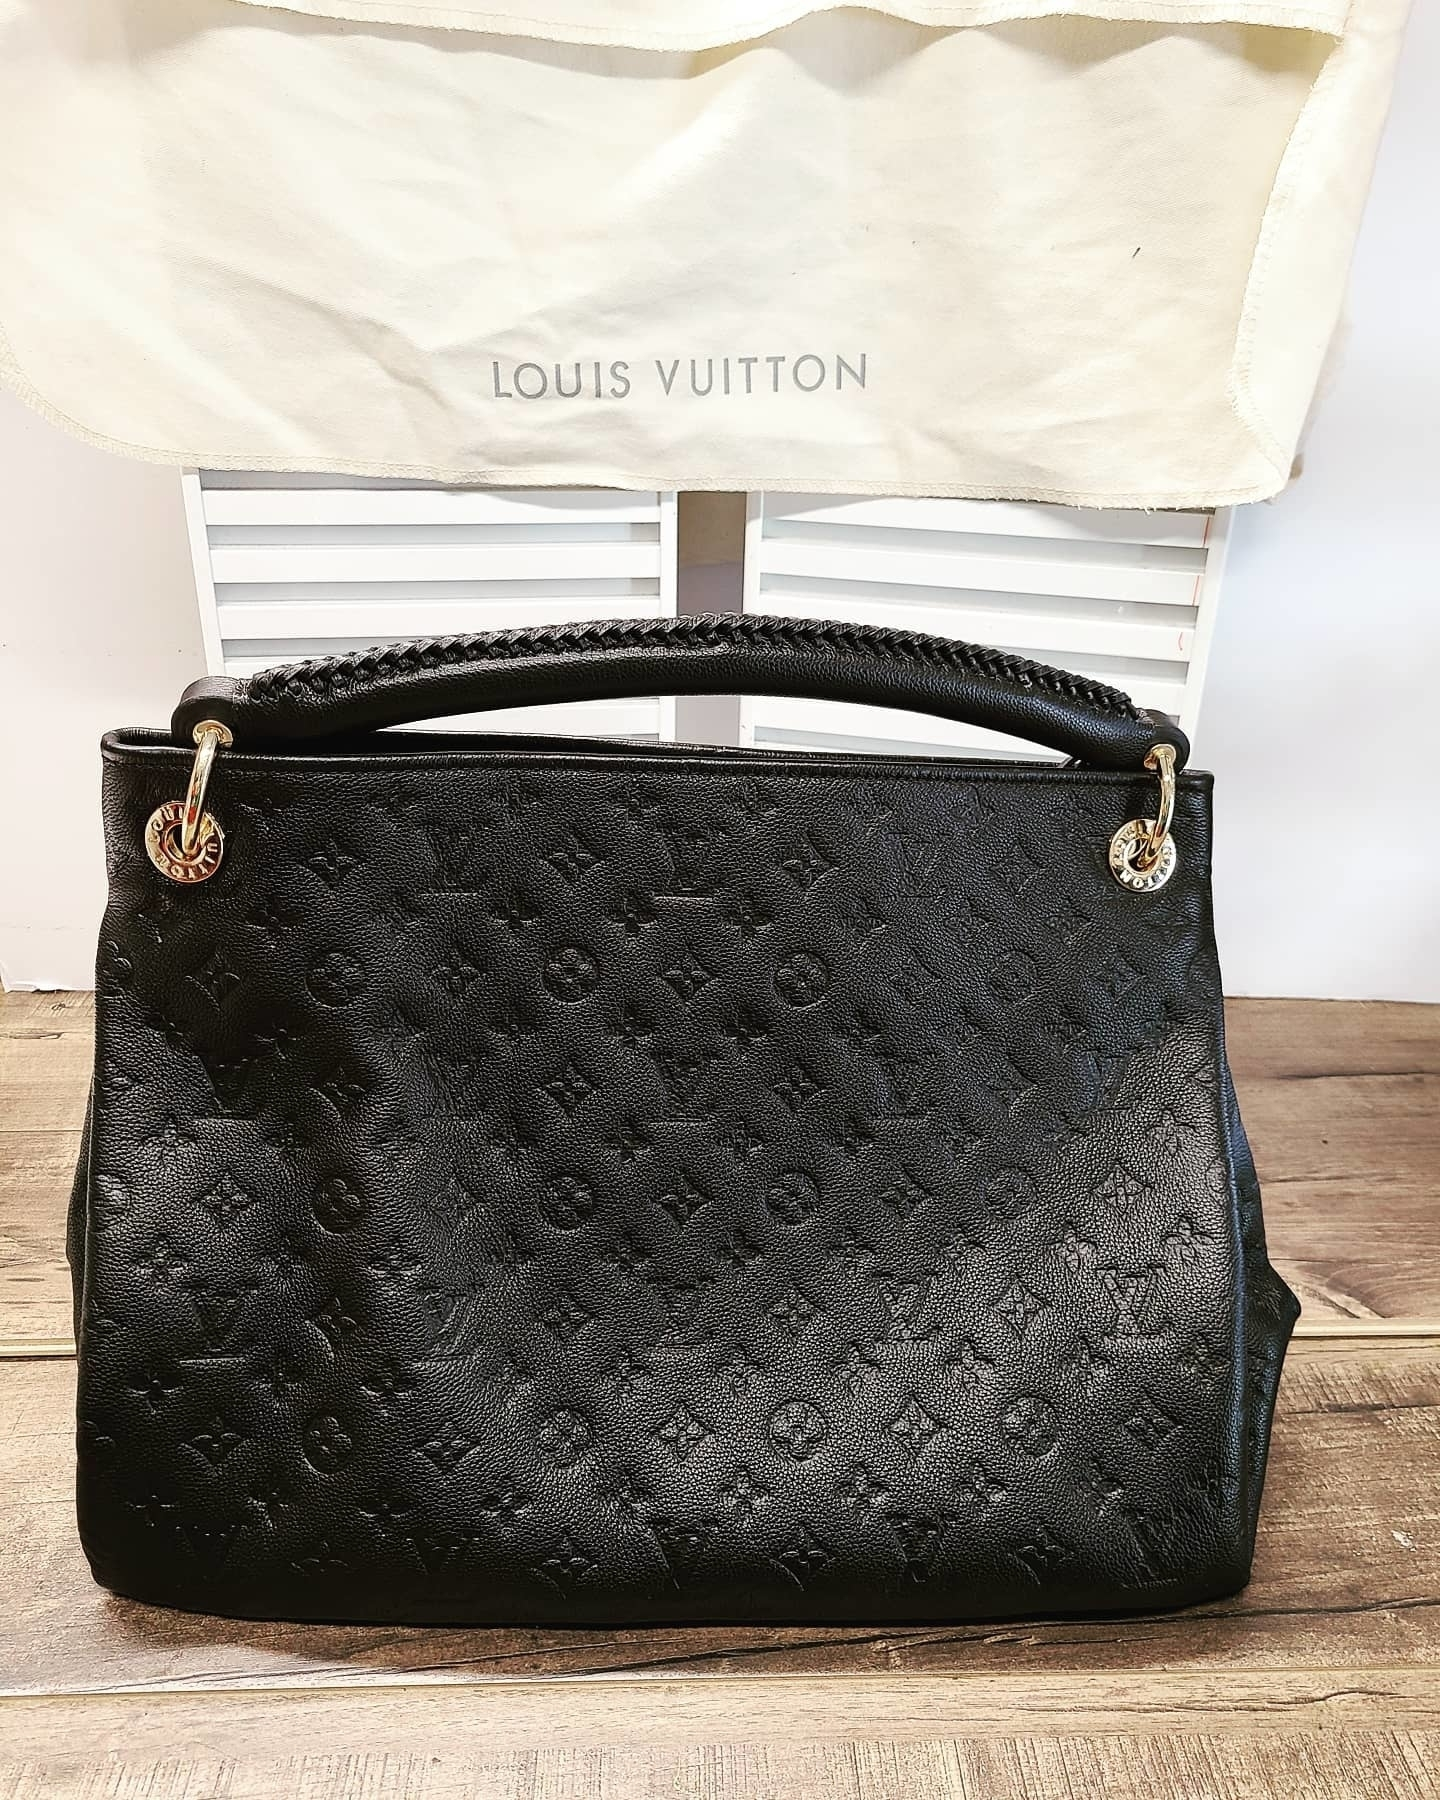 KW Shoe Repair & Sneaker Cleaning Service in Kitchener: Both rings where straps are are connected are installed  and fixed to this Louis Vuitton luxury handbag!